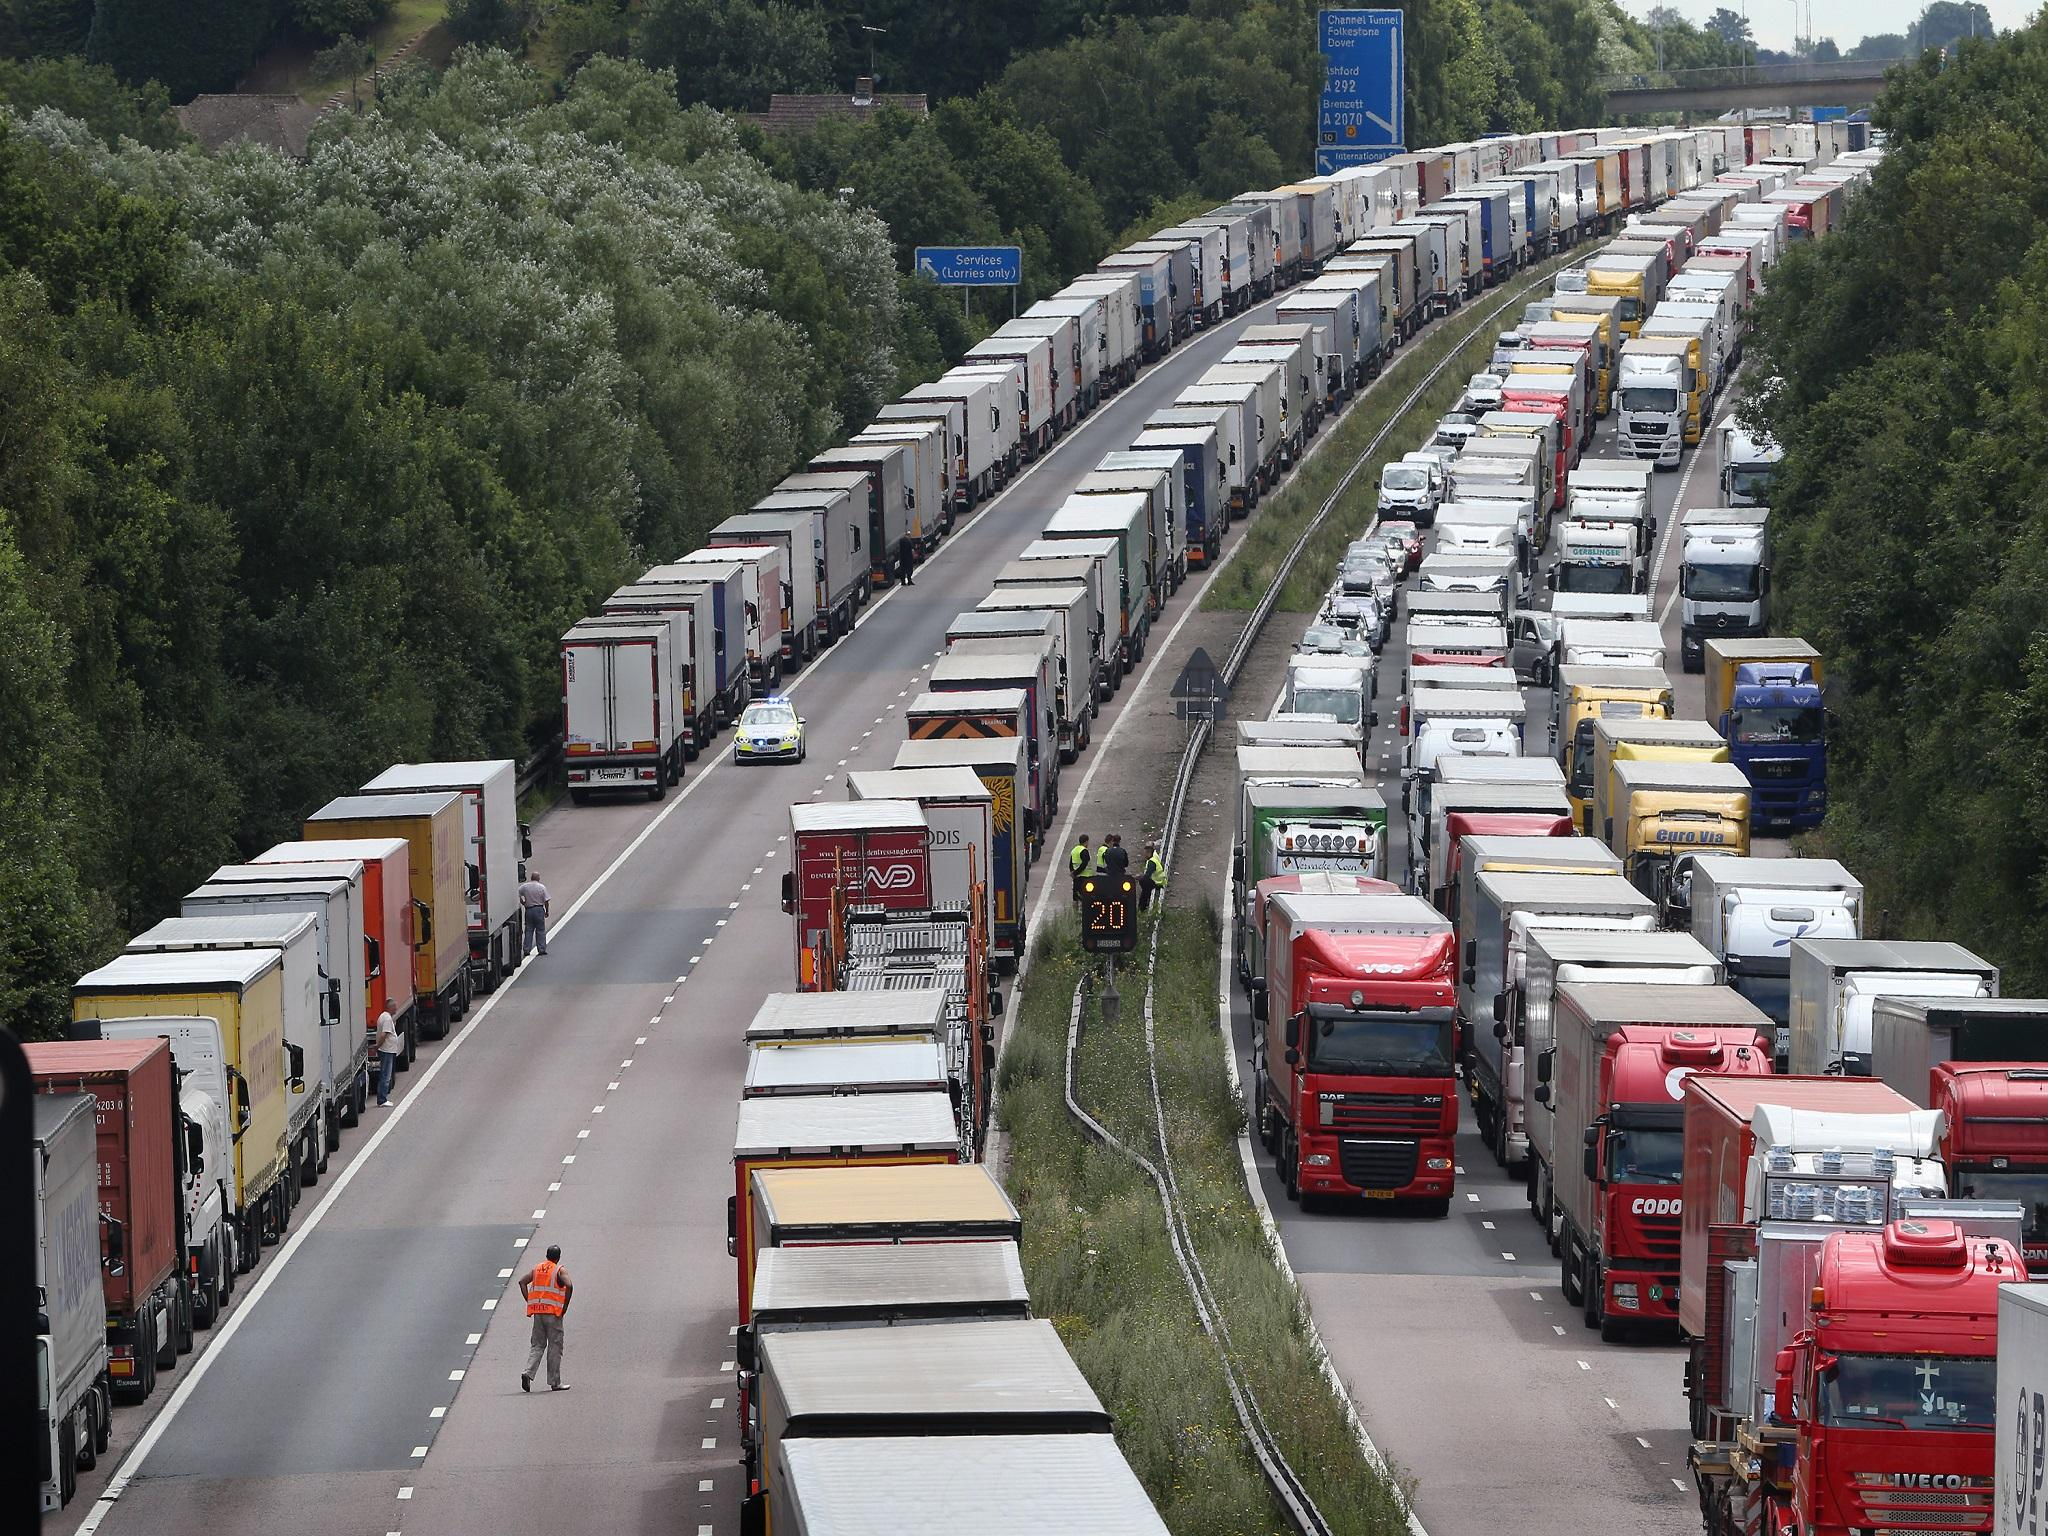 Brexit could trigger 15-mile queues and make it easier for illegal migrants to enter UK, deputy Calais mayor says